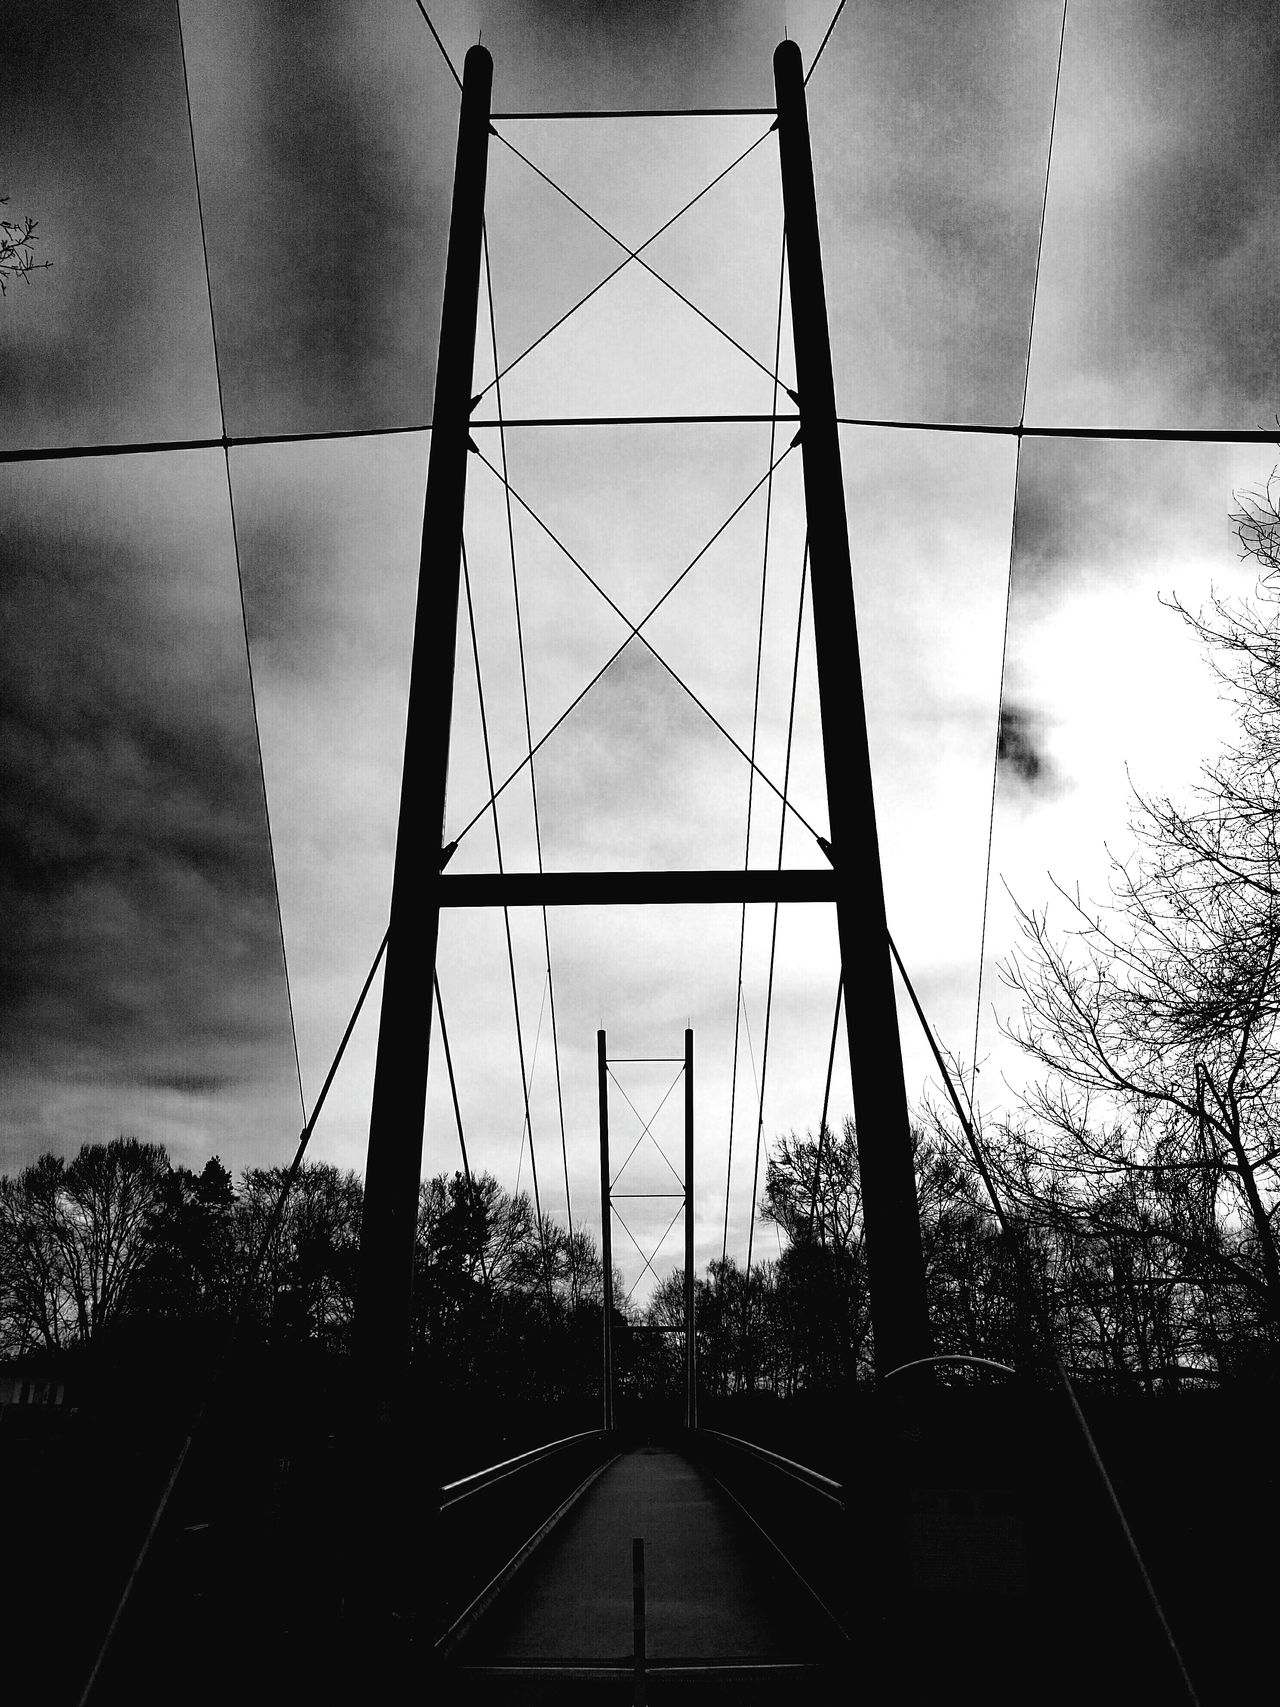 Experimental Experiment Experimenting... Bridge Bridges Bridge View No People Outdoors Day Blackandwhite Photography Blackandwhitephotography Blackandwhite Black And White Photography Bridge Photography HuaweiP9 HuaweiP9Photography Huaweiphotography Huawei P9 Leica Abstract Abstractions Abstaction